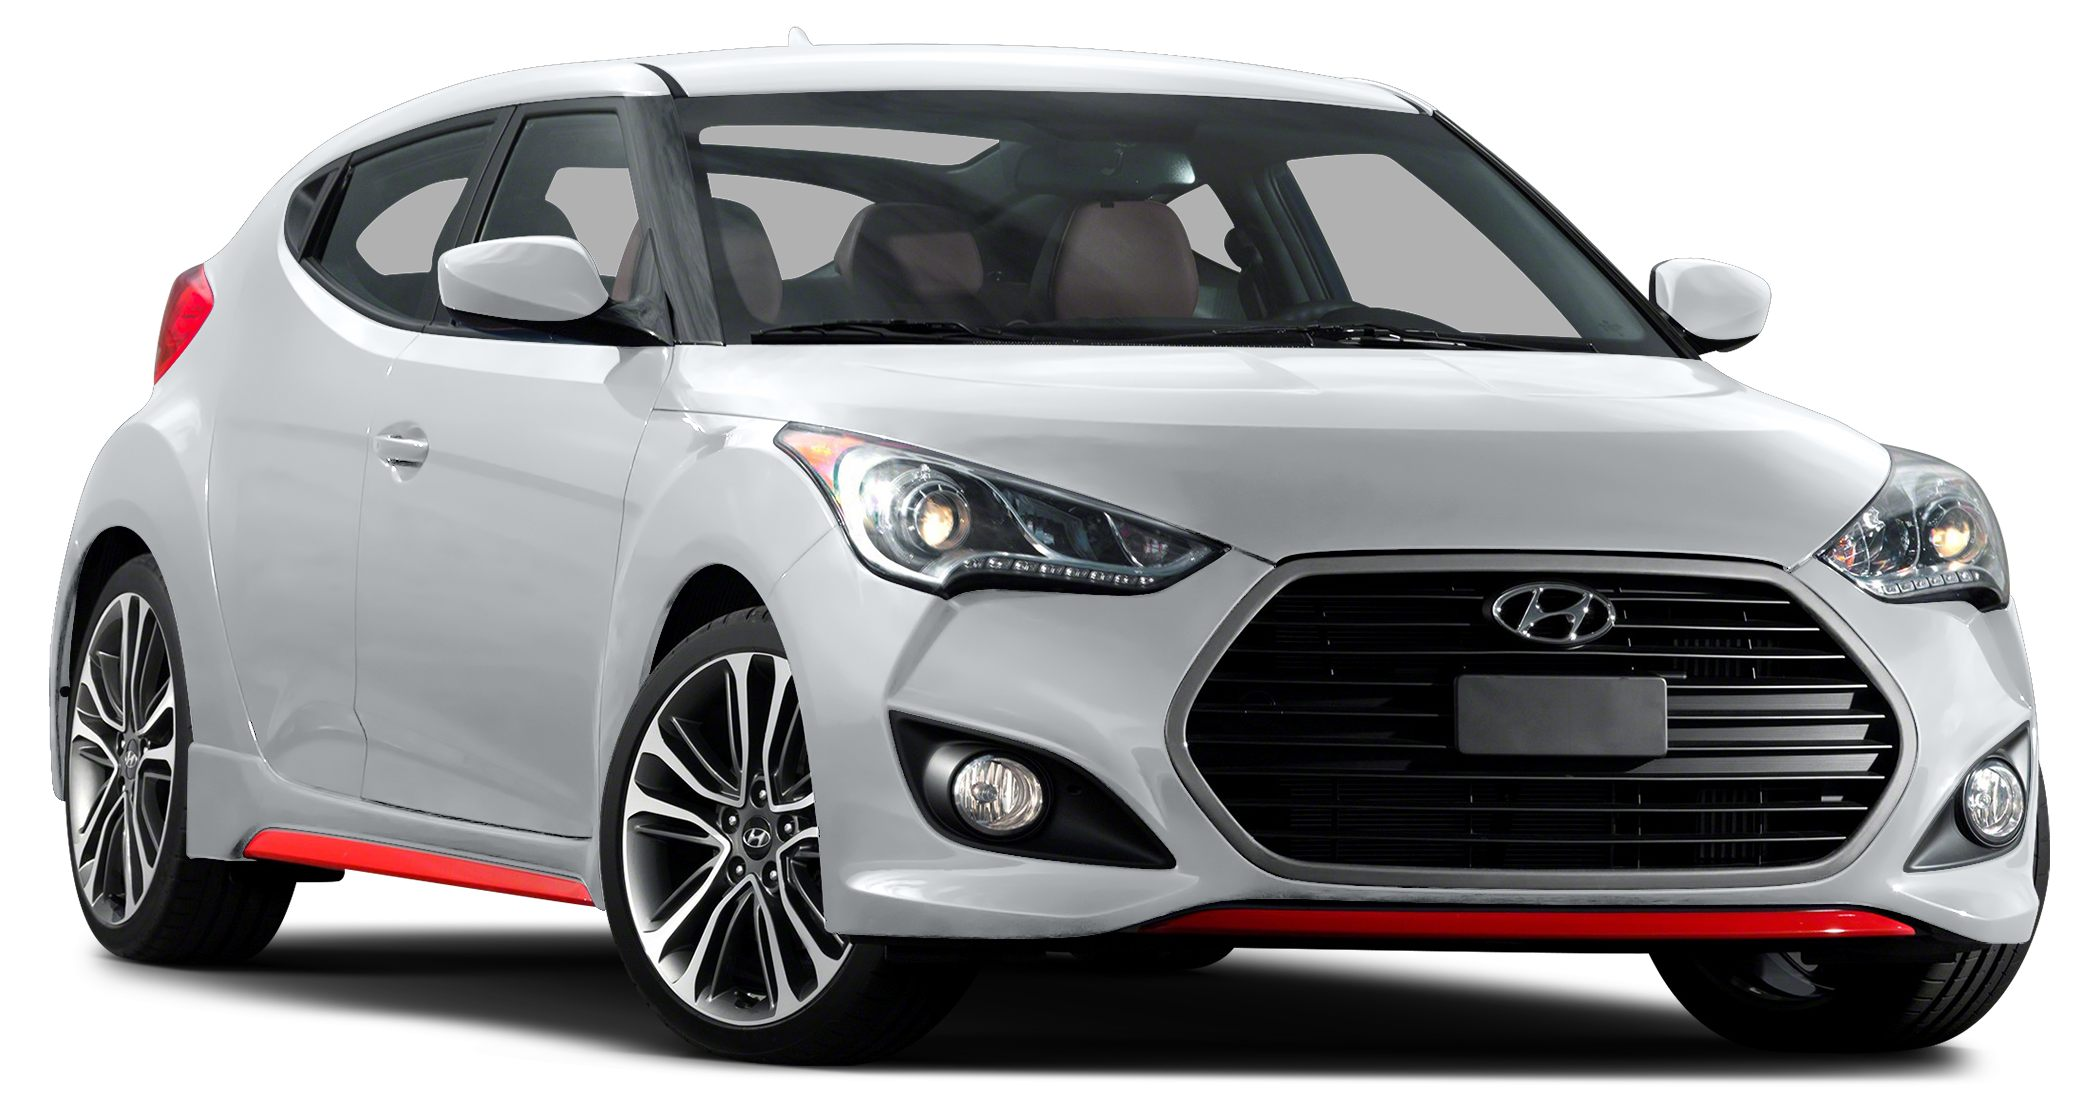 2016 Hyundai Veloster Turbo R-Spec Looking for a new car at an affordable price Introducing the 2